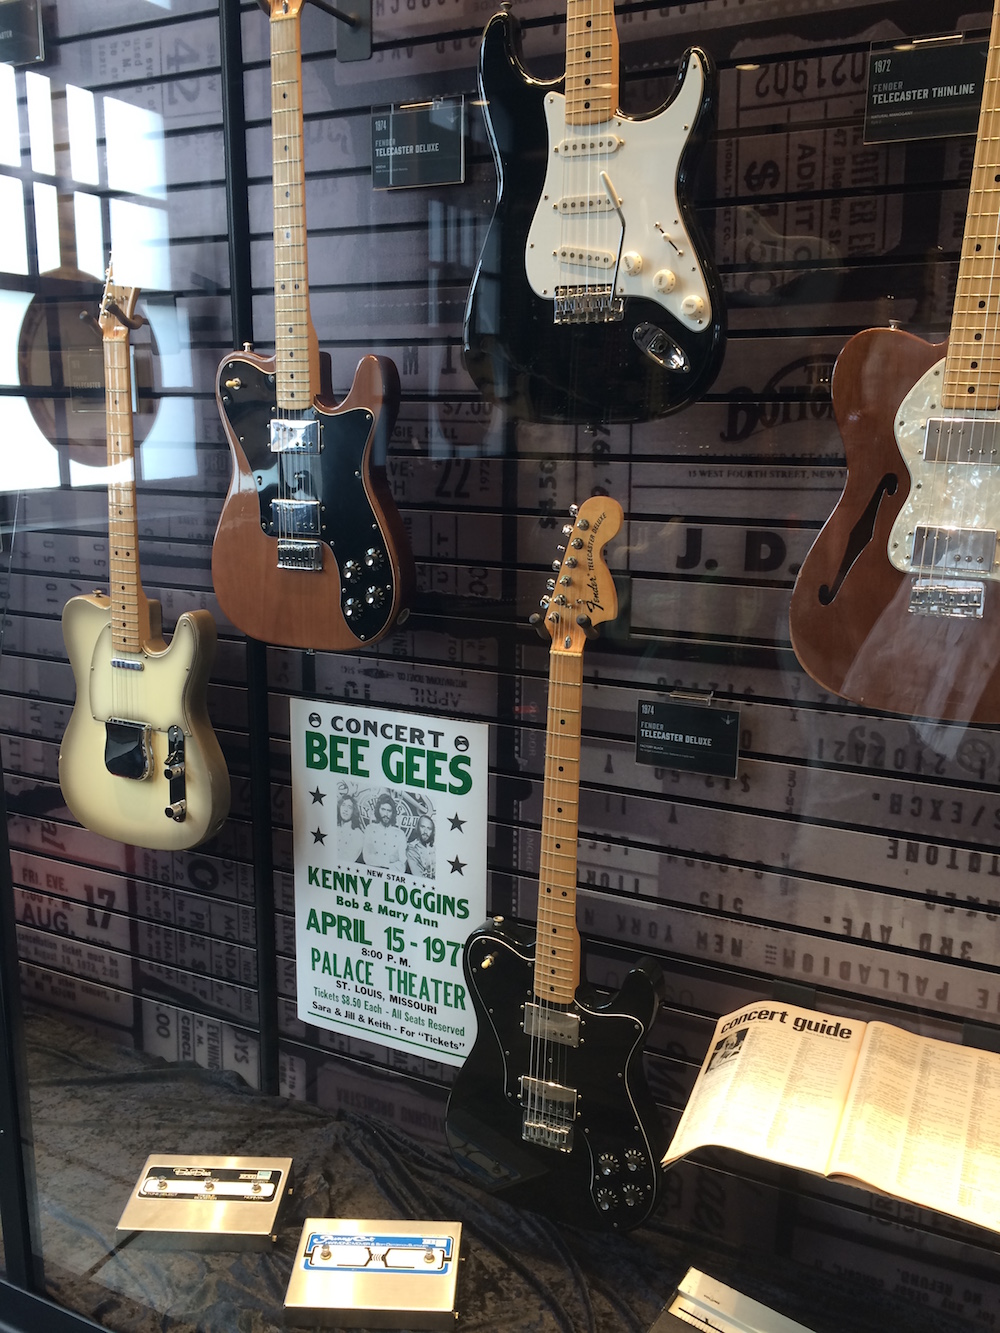 The Bee Gee's guitar and poster